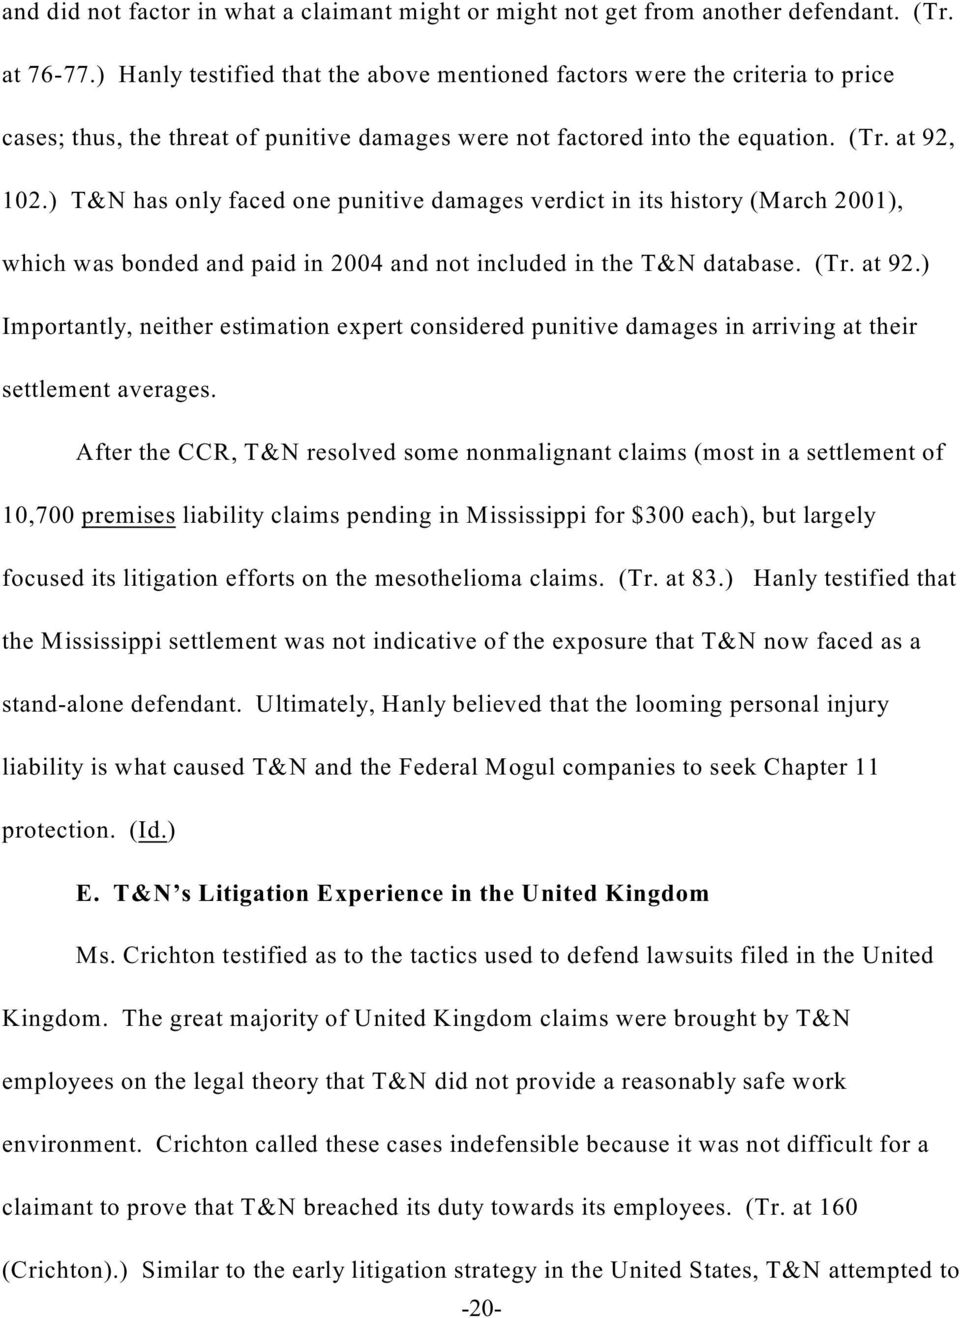 ) T&N has only faced one punitive damages verdict in its history (March 2001), which was bonded and paid in 2004 and not included in the T&N database. (Tr. at 92.